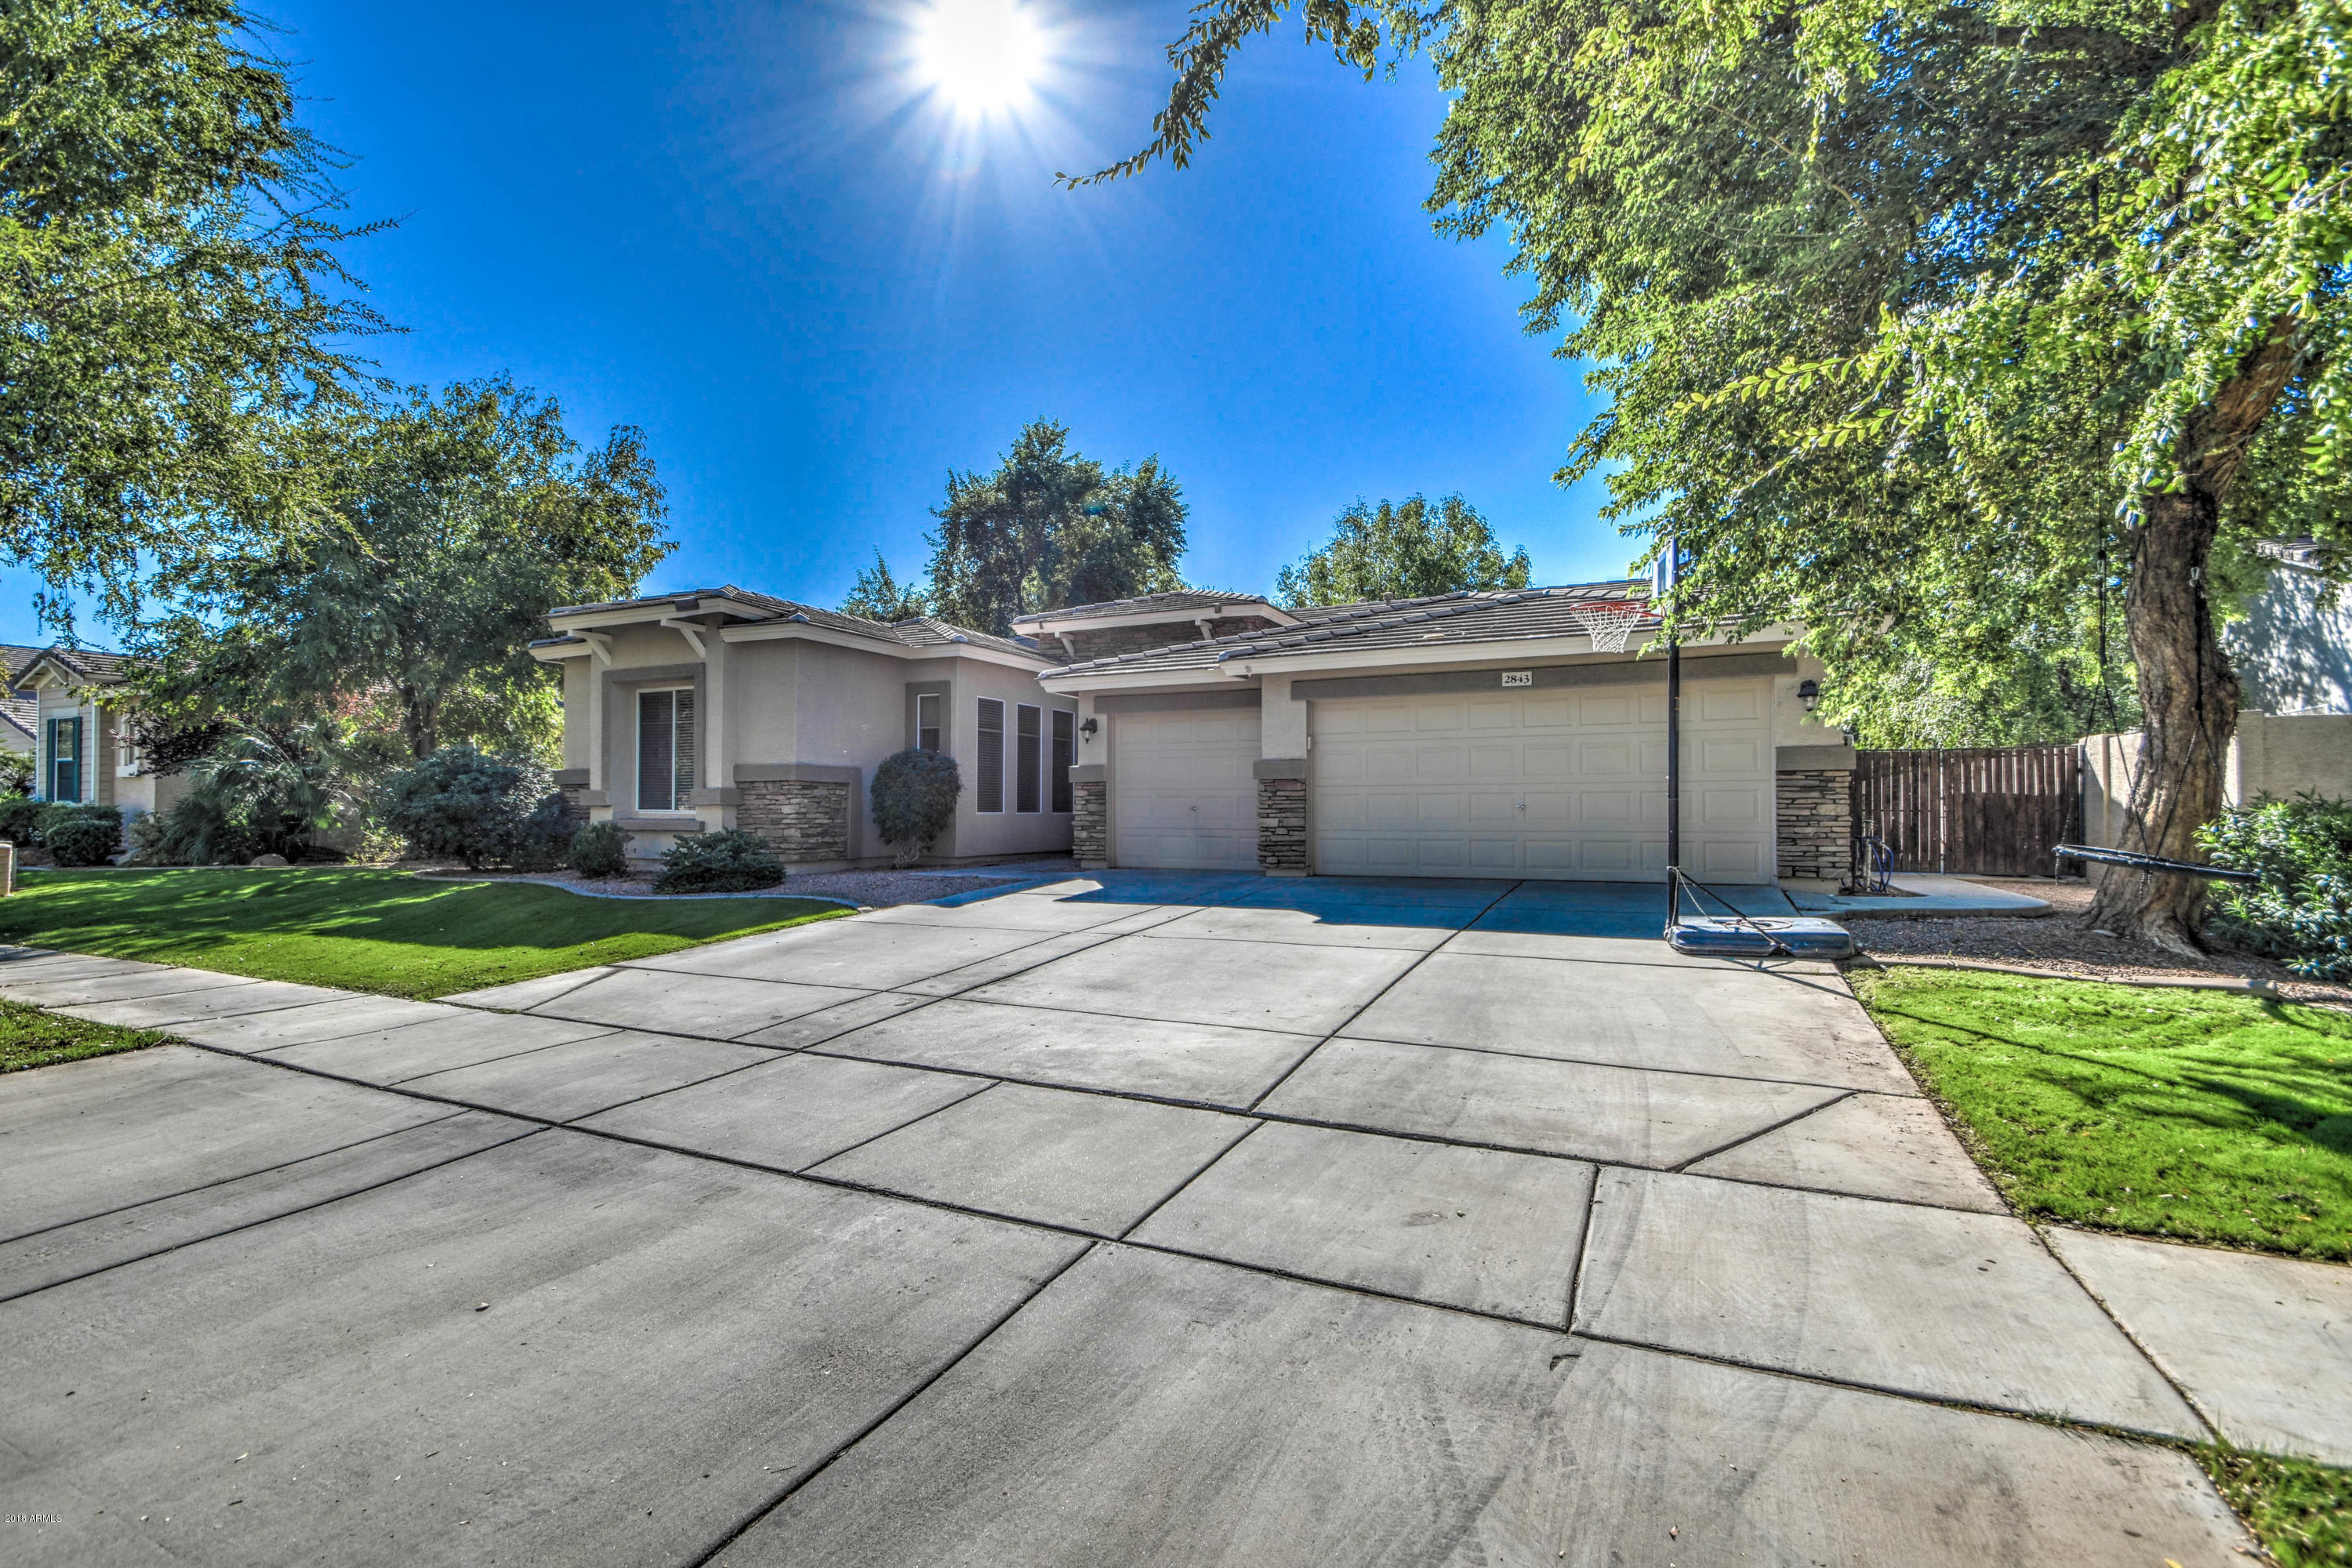 MLS 5841694 2843 E LEXINGTON Court, Gilbert, AZ 85234 Gilbert AZ Higley Groves